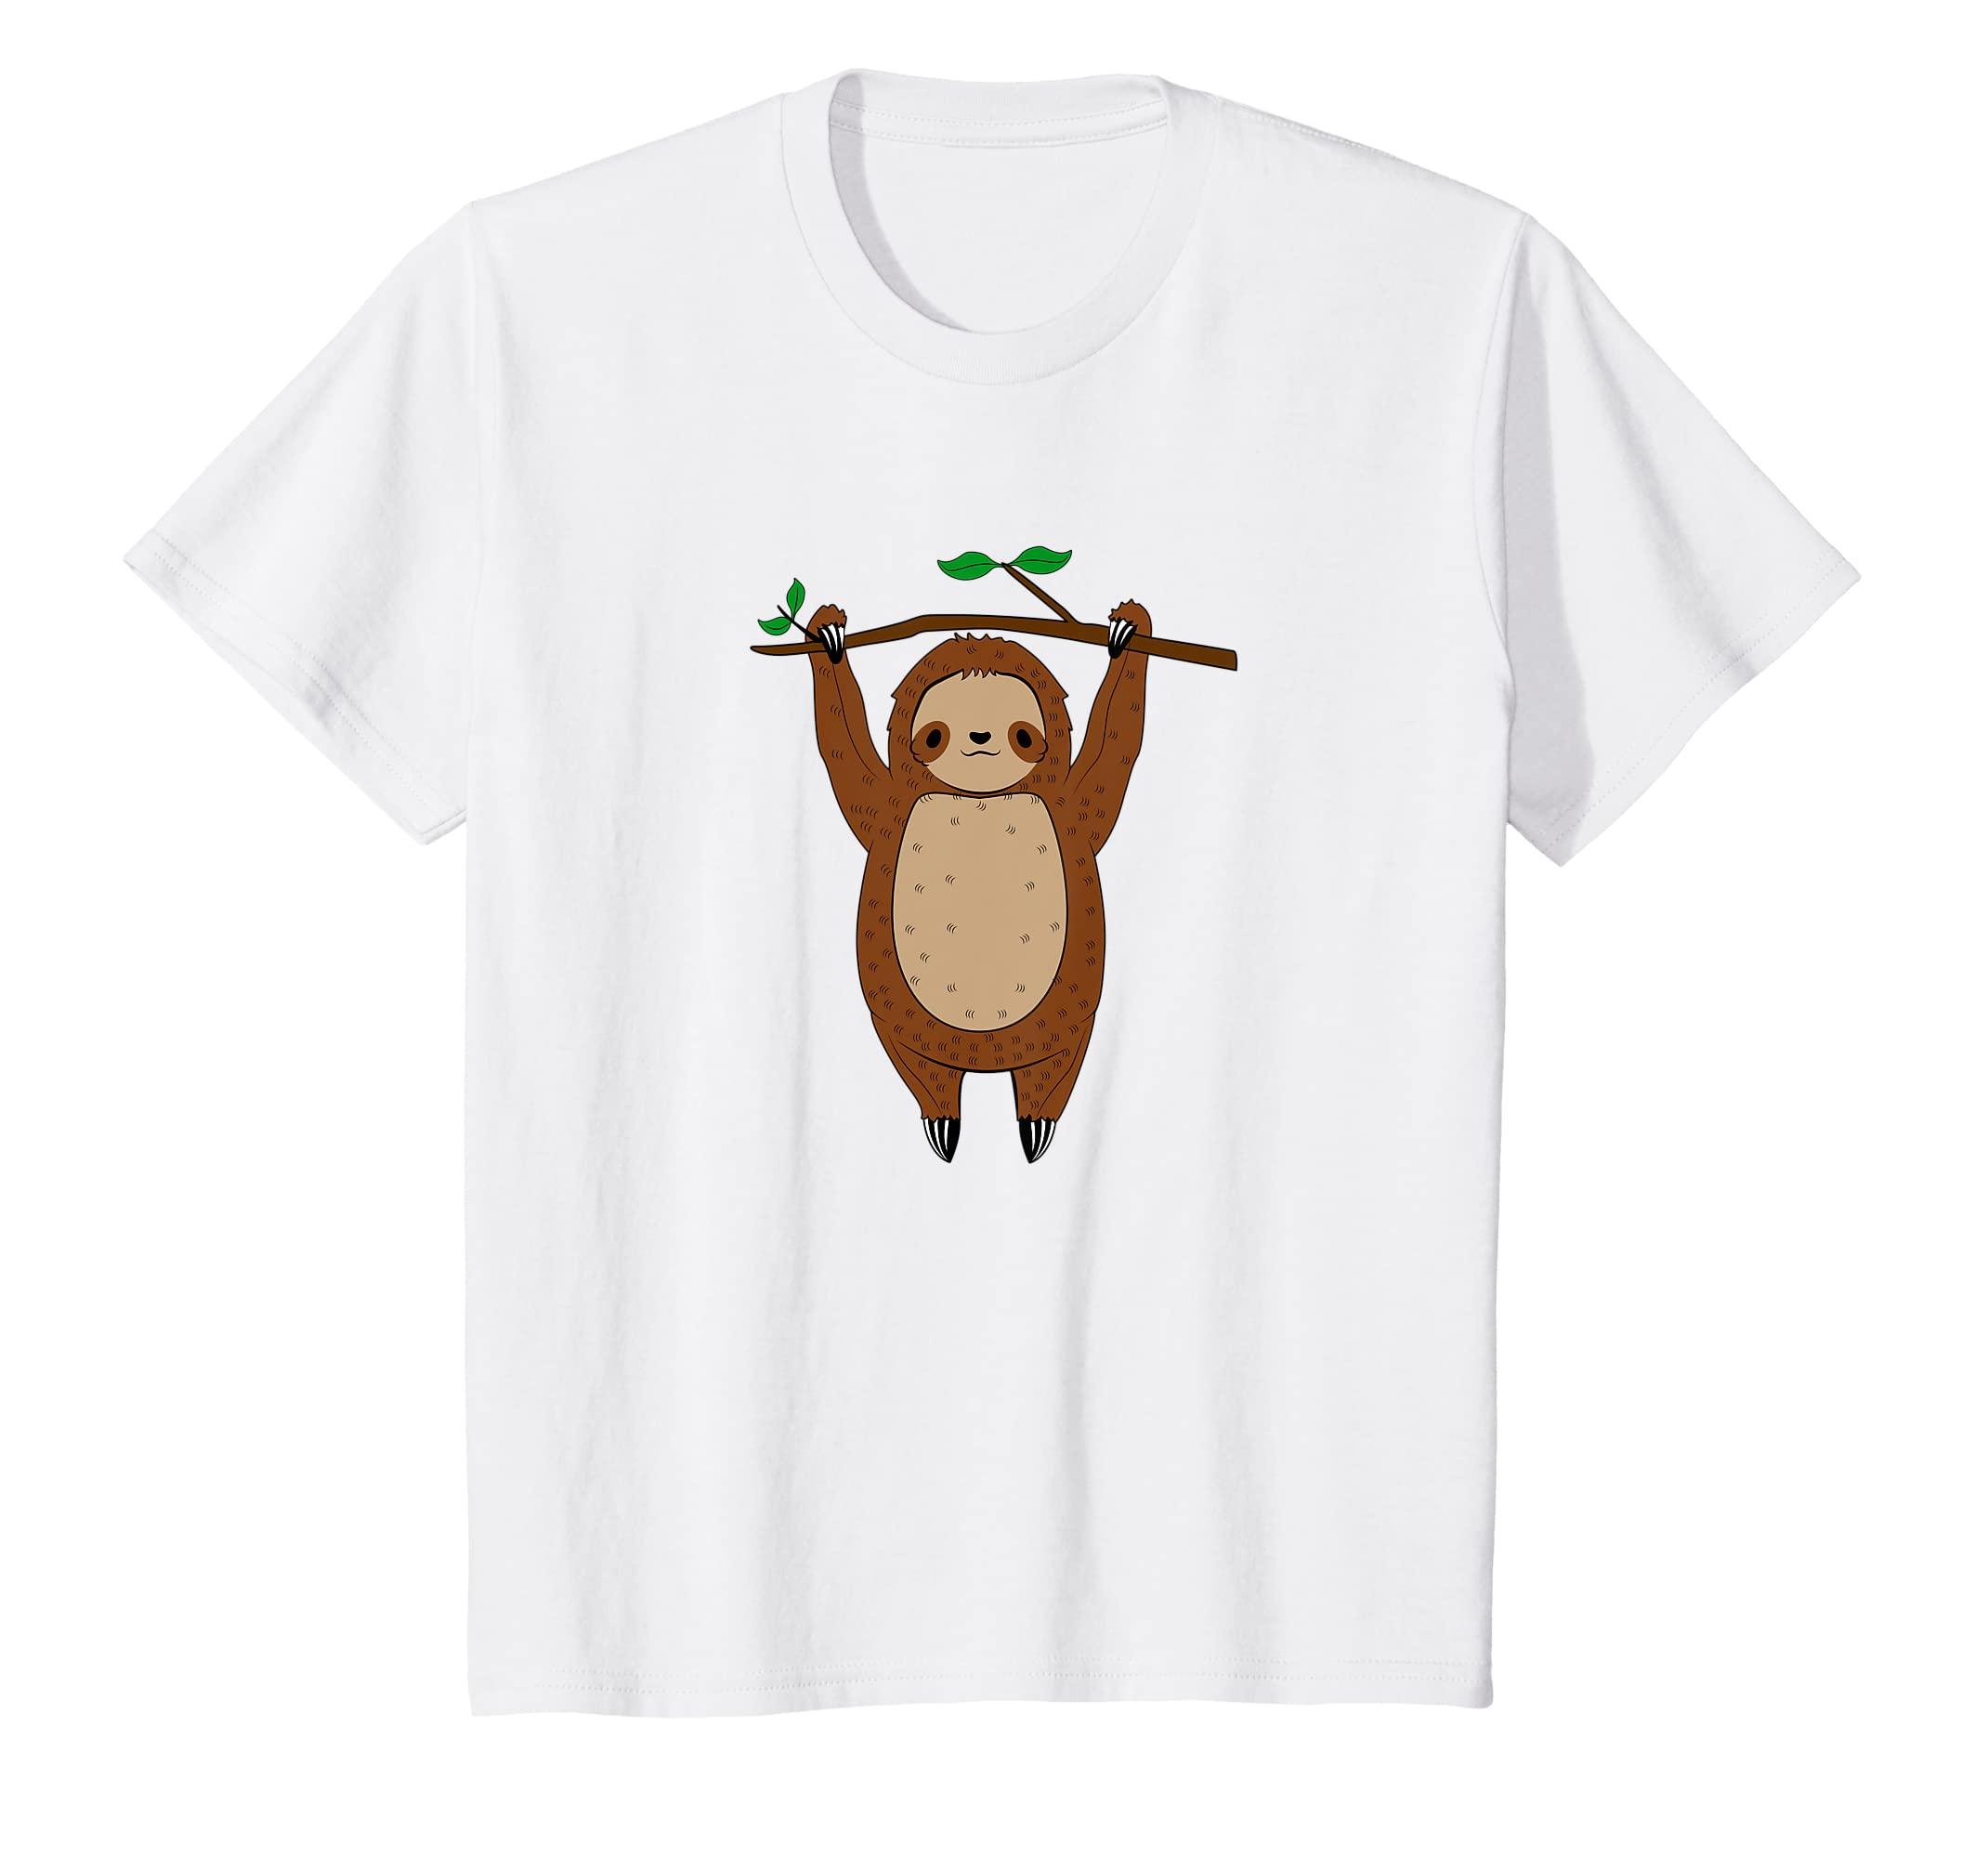 0128099b1 Amazon.com: Cute Lazy Sloth Hanging Funny T-Shirt: Clothing